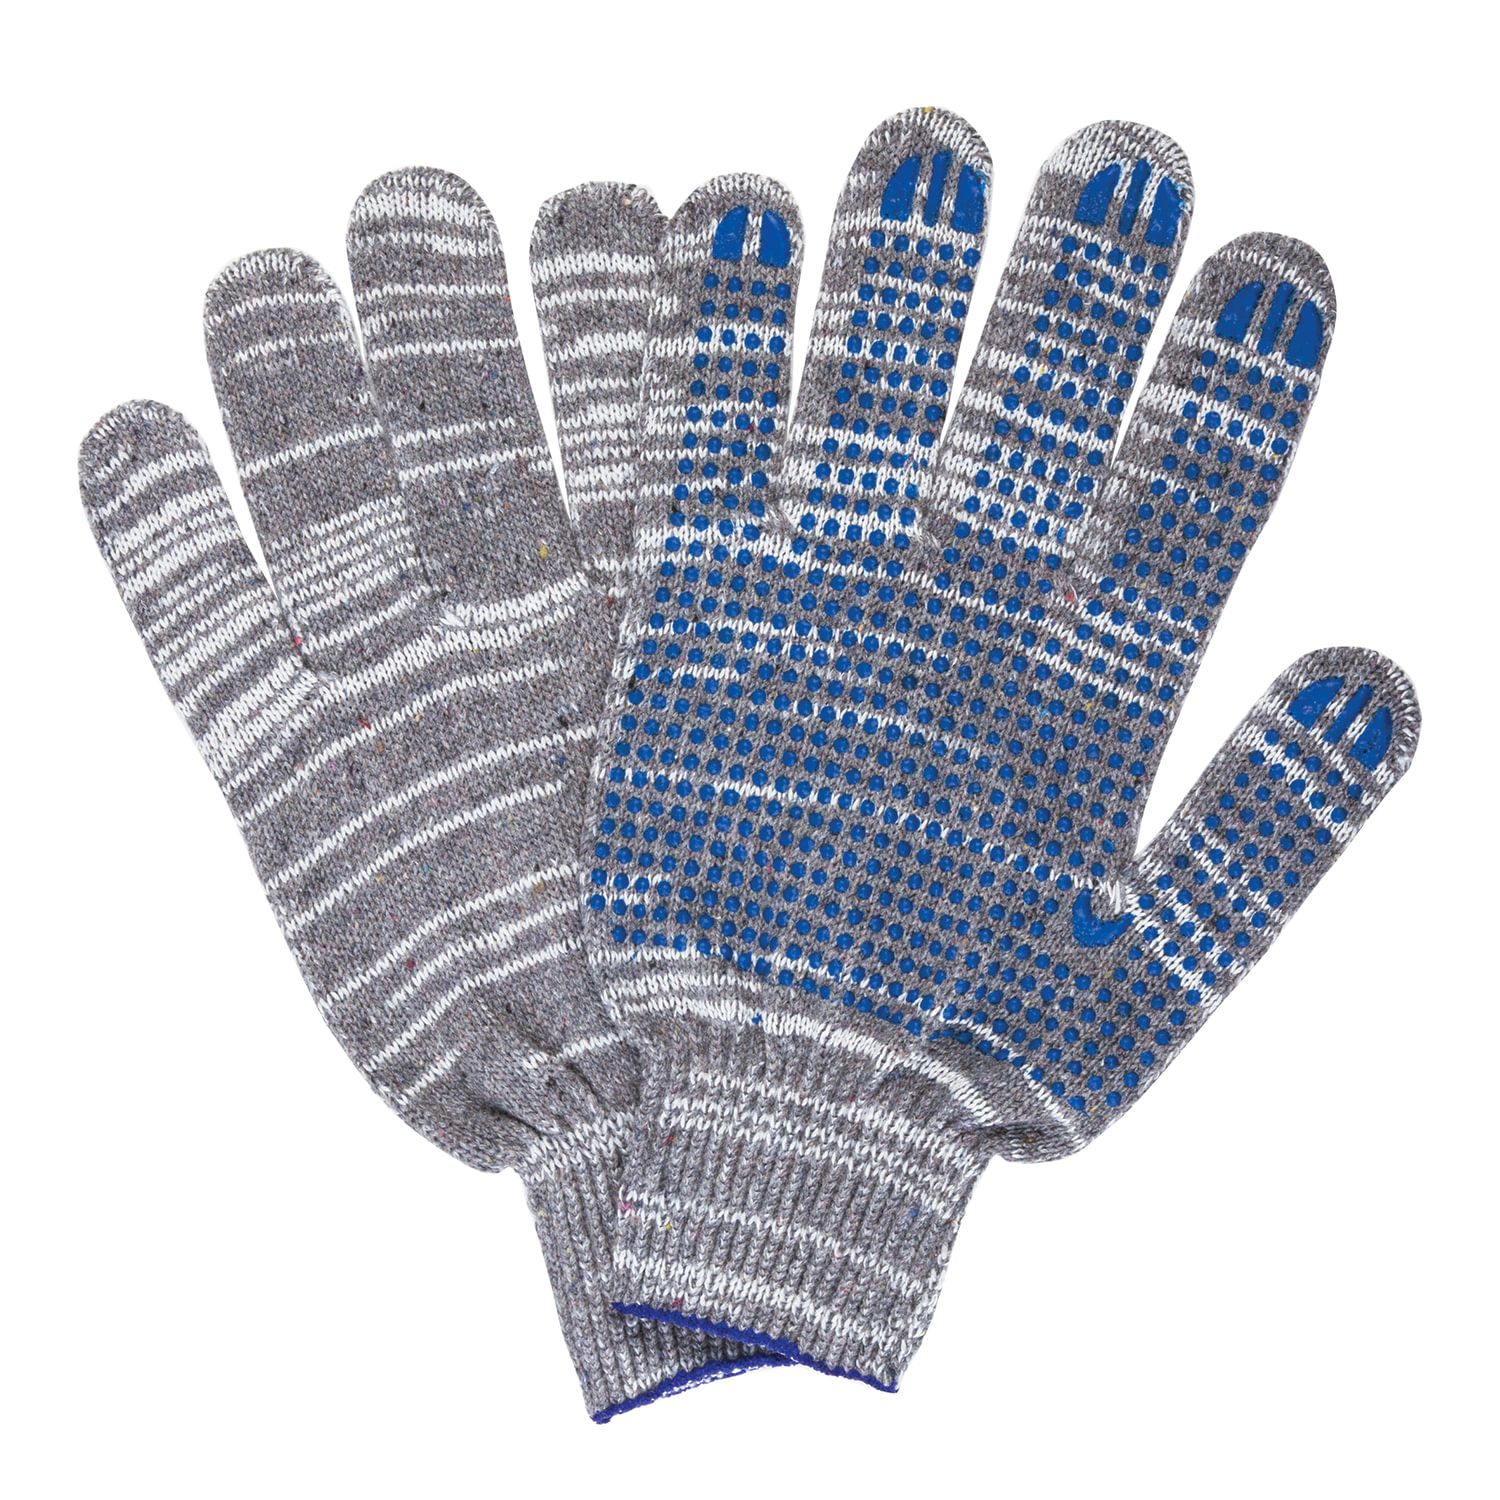 LIMA / Cotton gloves LUX 2, SET of 5 PAIRS, grade 10, 50-52 g, 133 tex, PVC point, GRAY